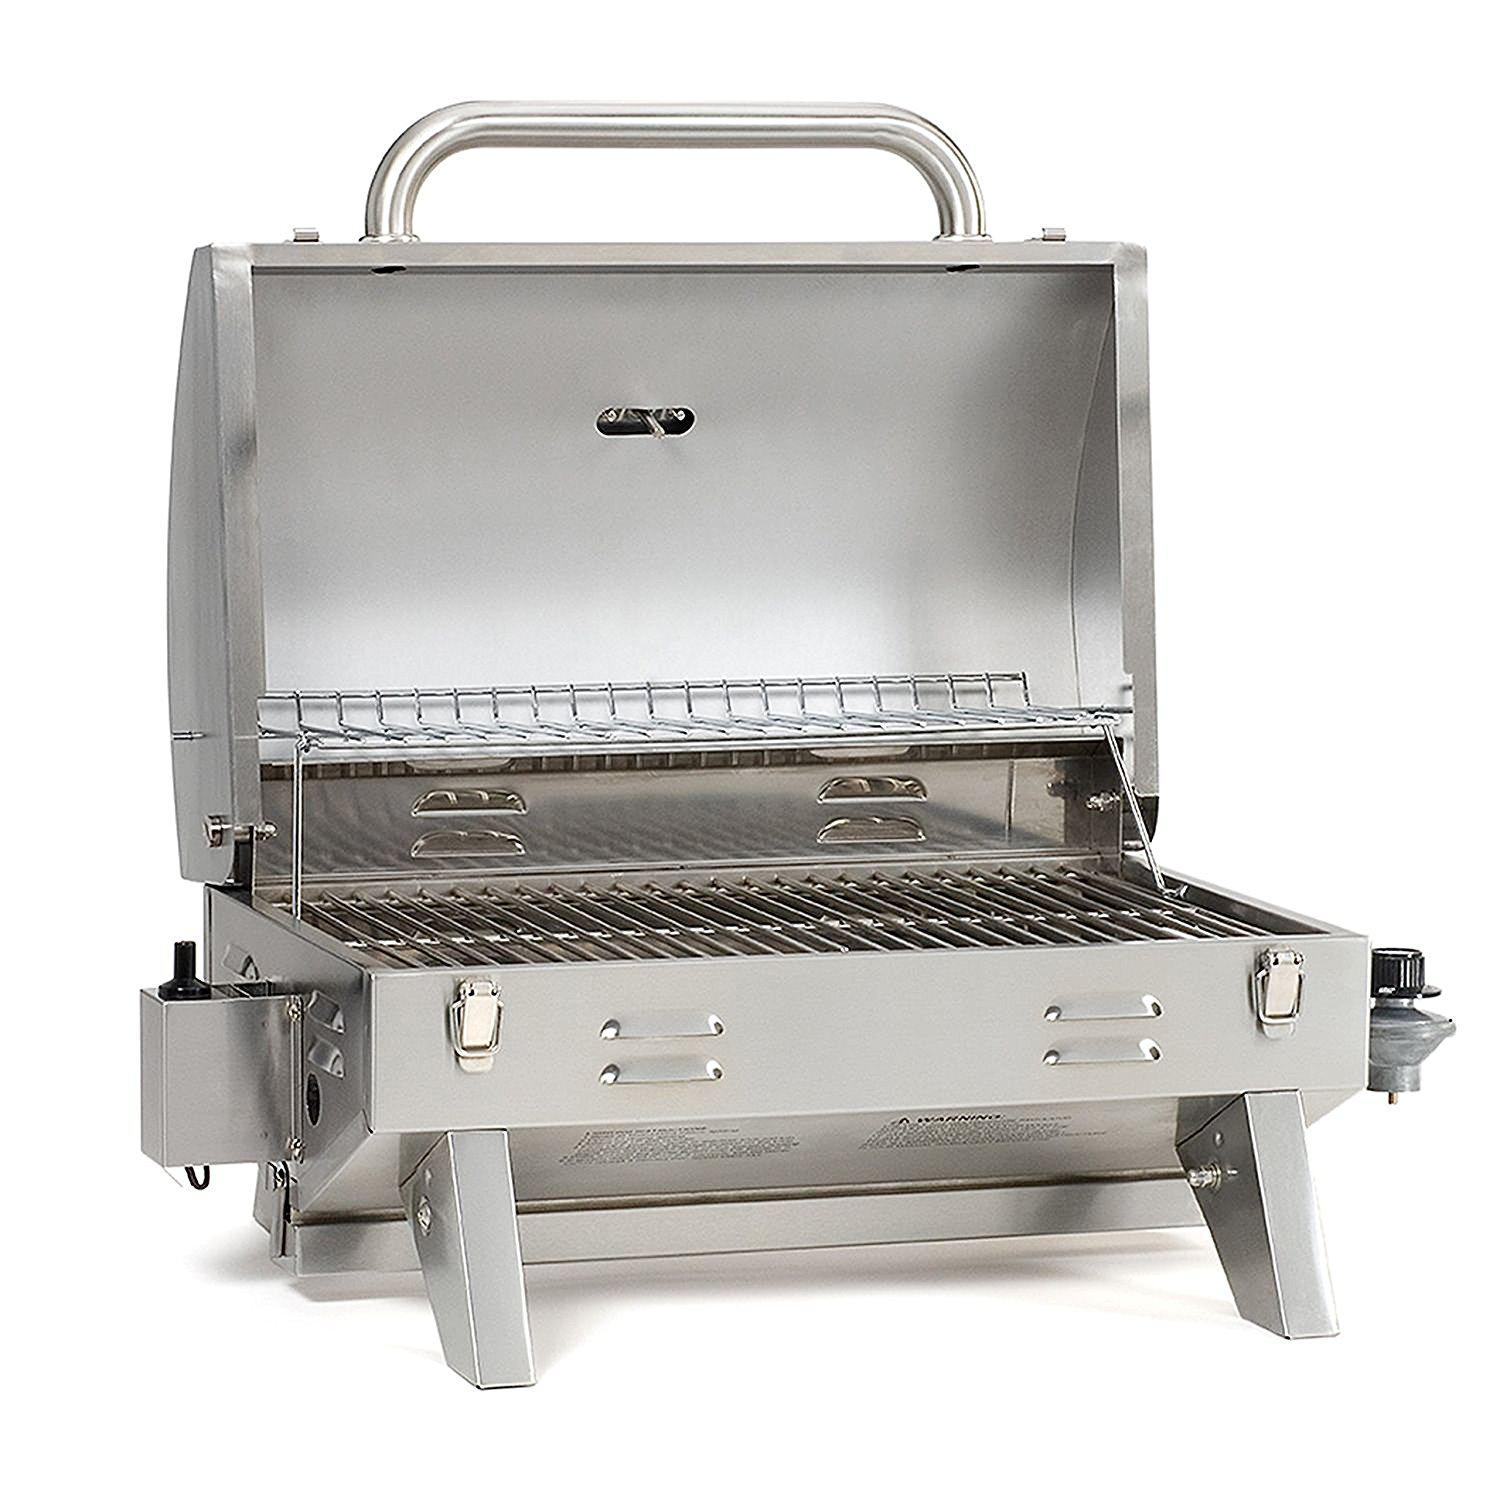 Stainless steel tabletop propane gas grill best offer reviews